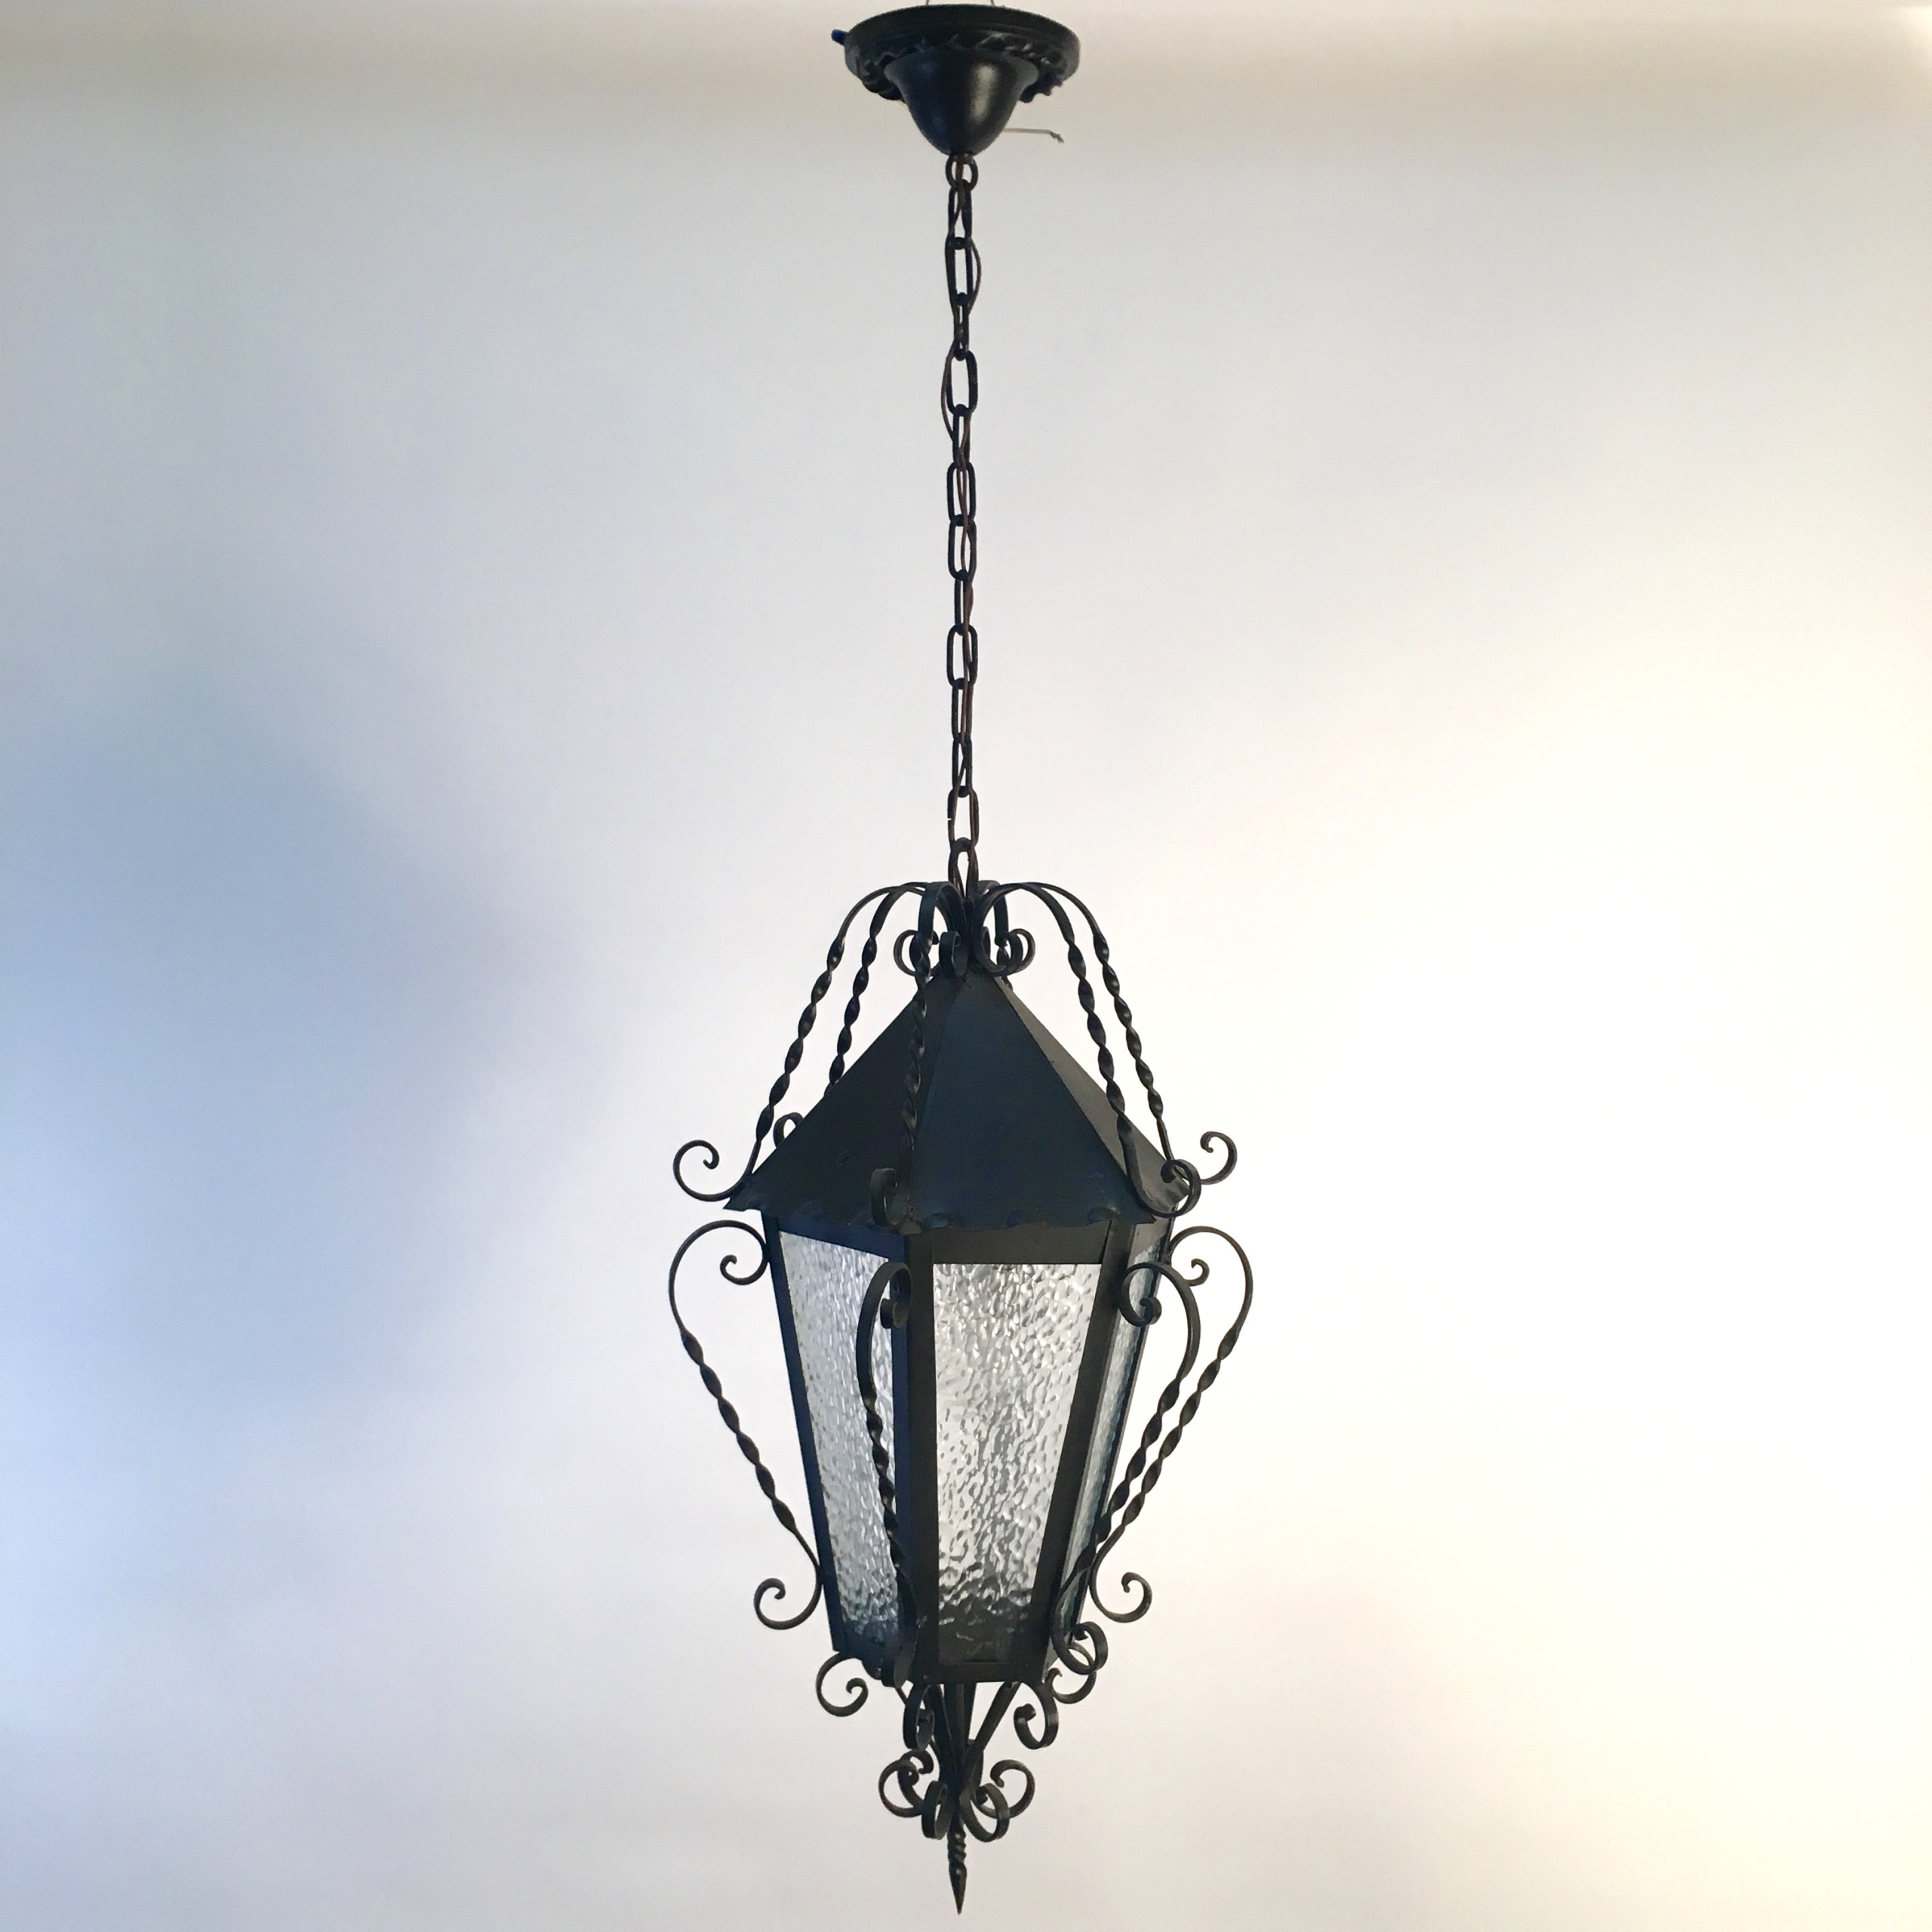 hanging lantern lighting zoom fixtures lights pendant of tuscany ceiling